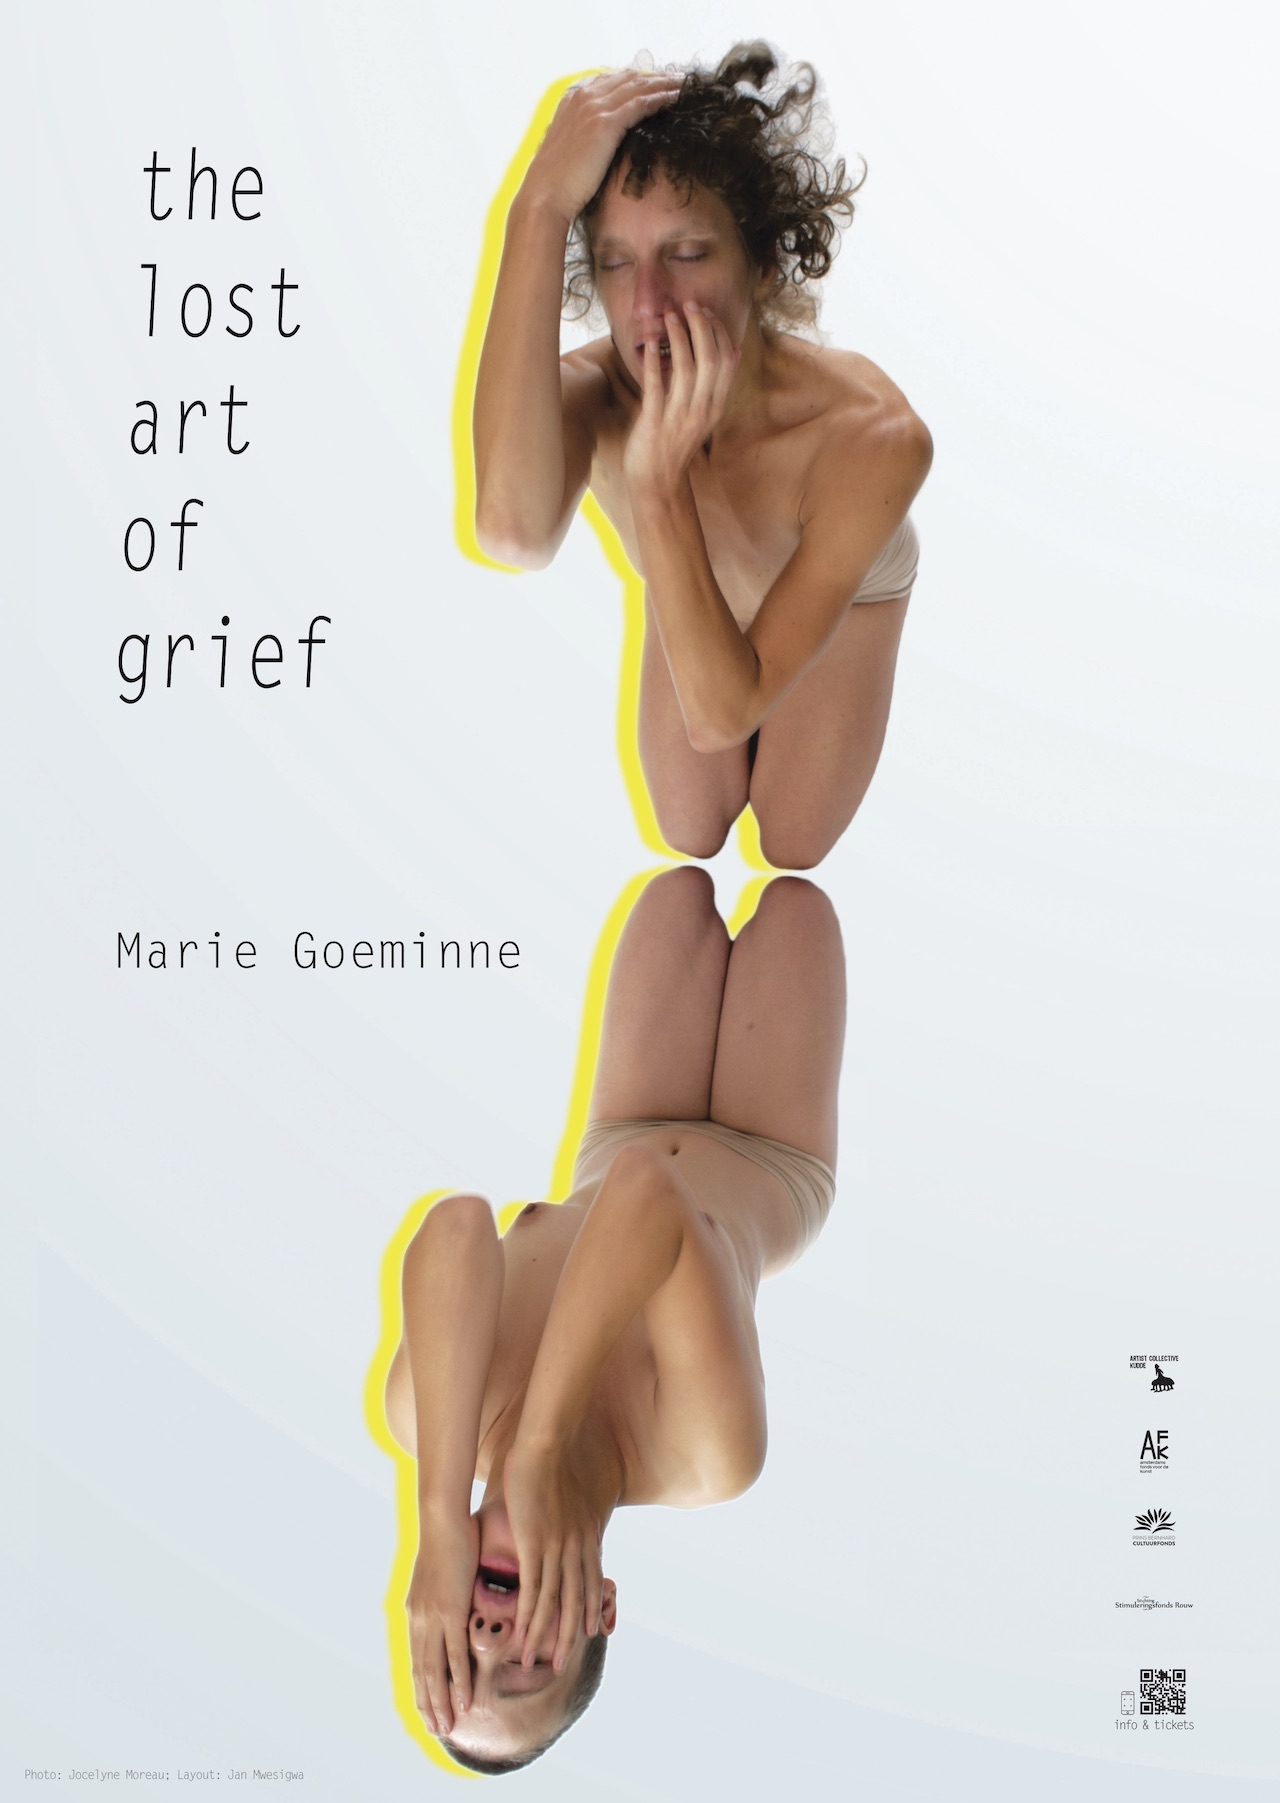 poster layout for performance the lost art of grief